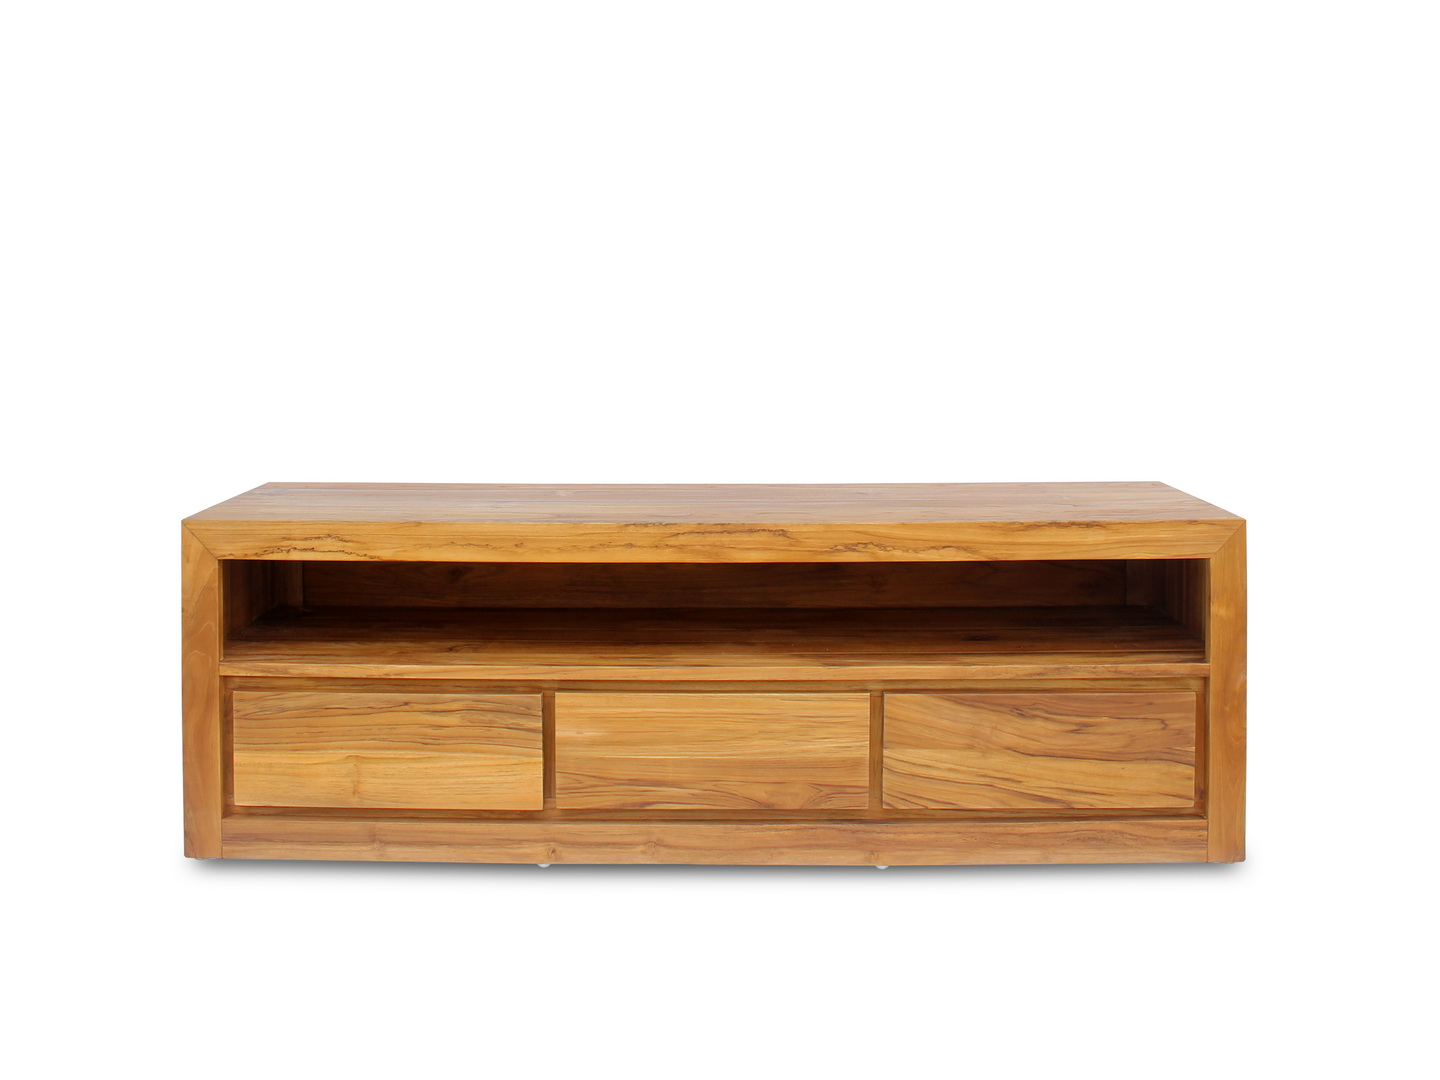 midland_cabinet_01_yuni_bali_furniture_manufactuerer_exporter_jepara_teakwood_indonesia_shopping_showroom